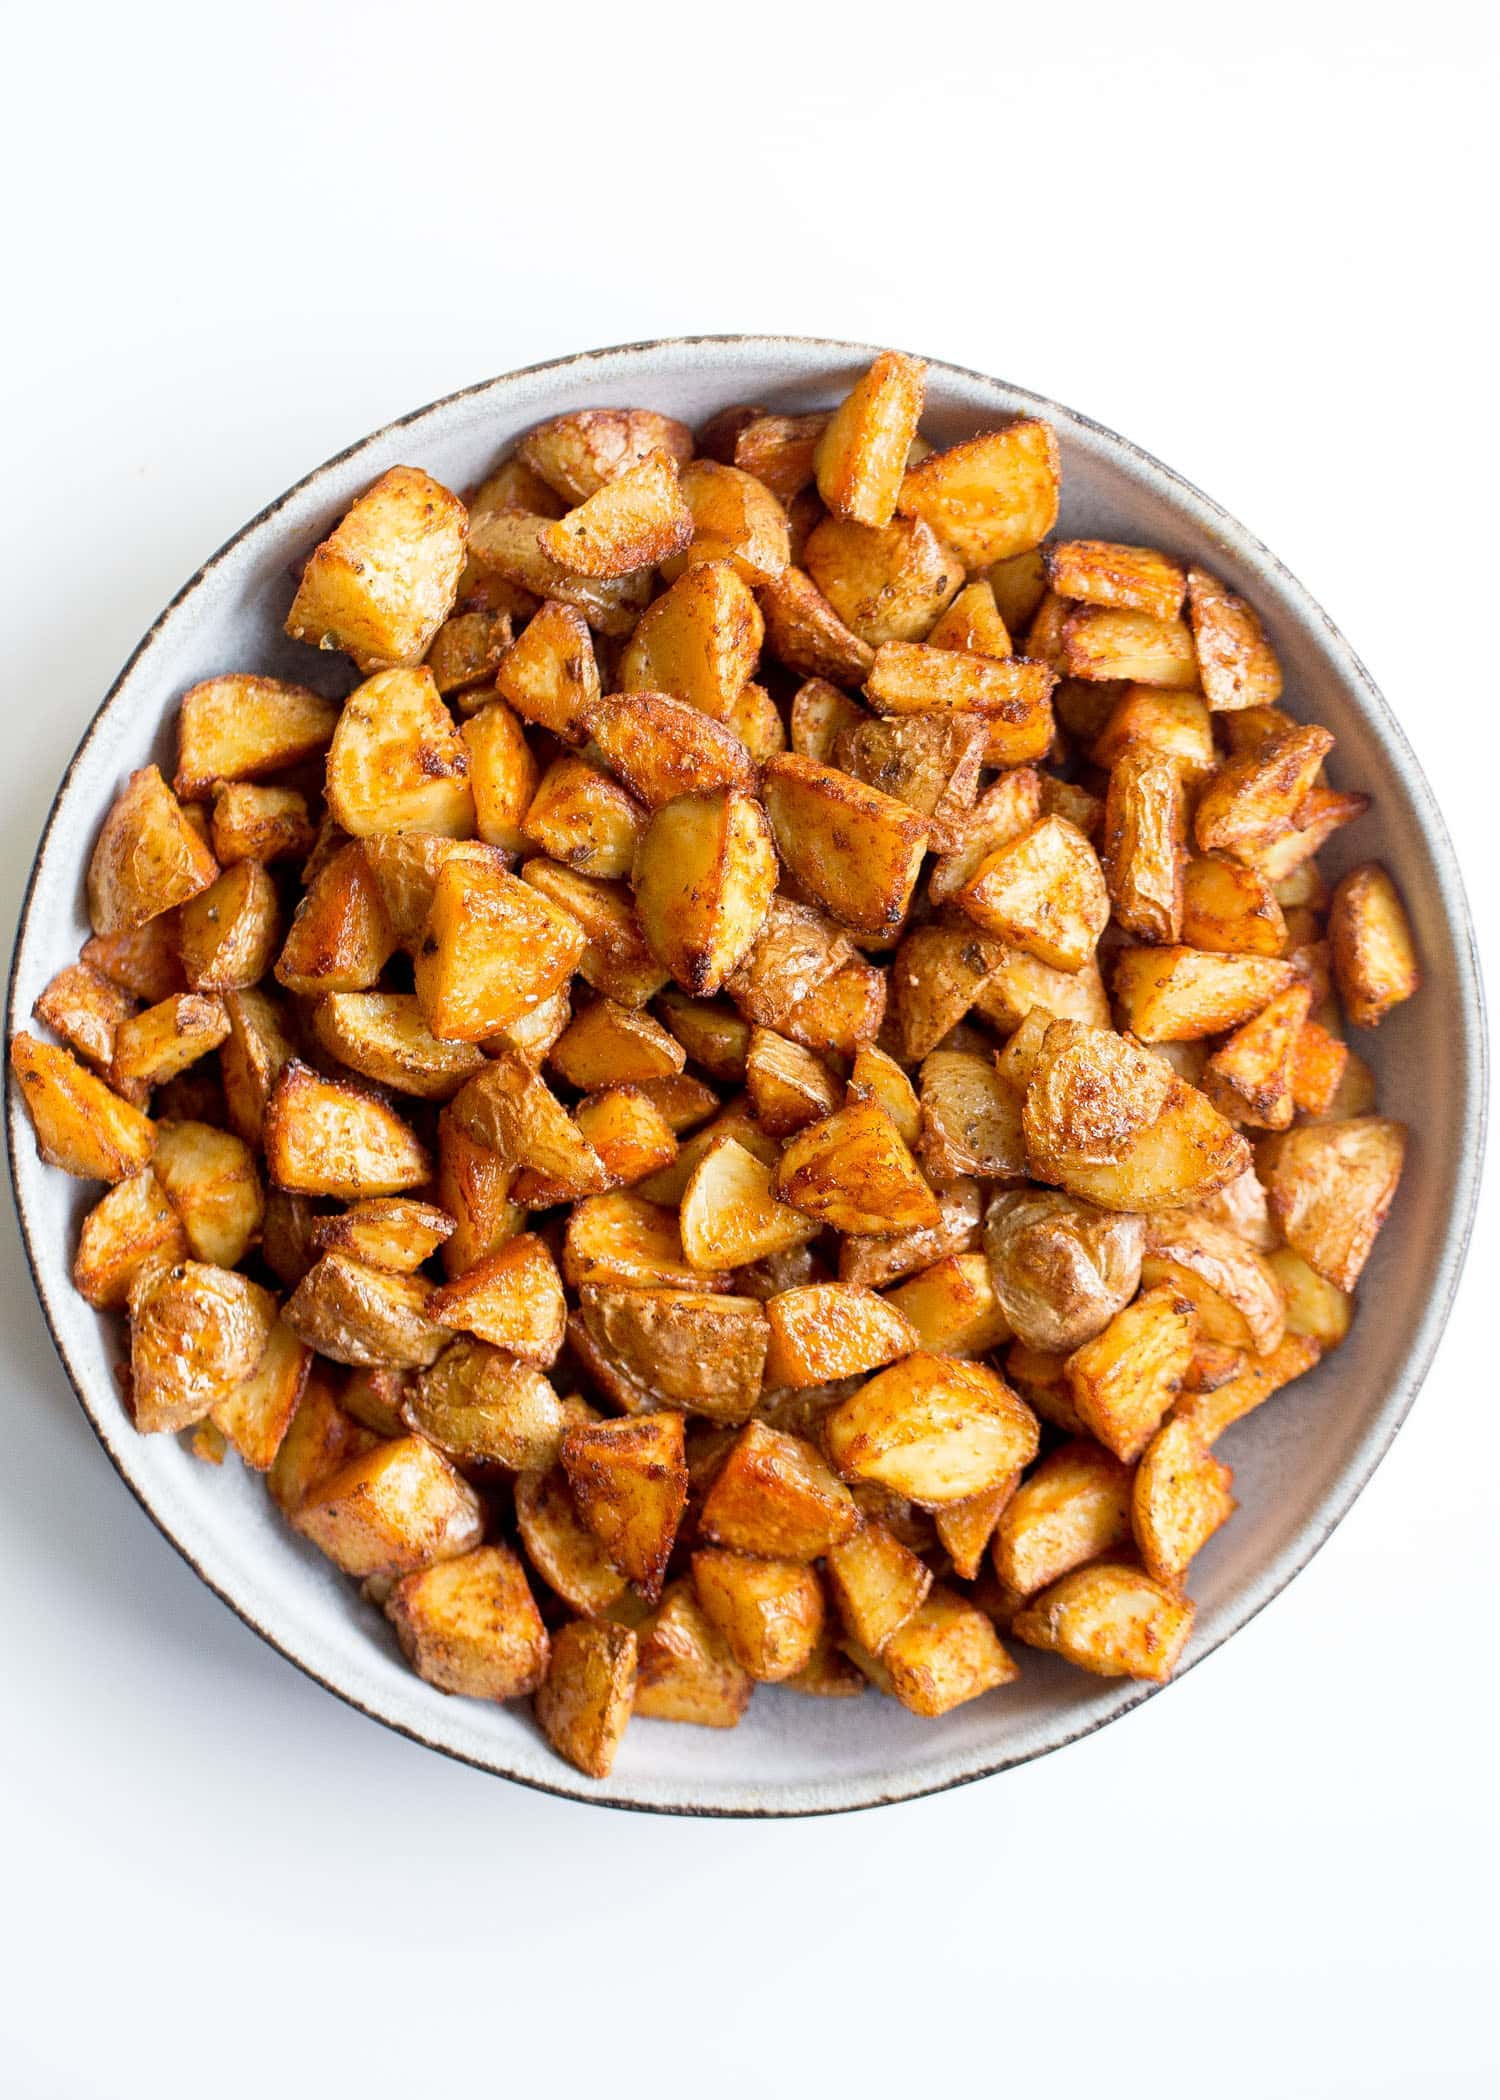 Bowl of crispy potatoes on a white background